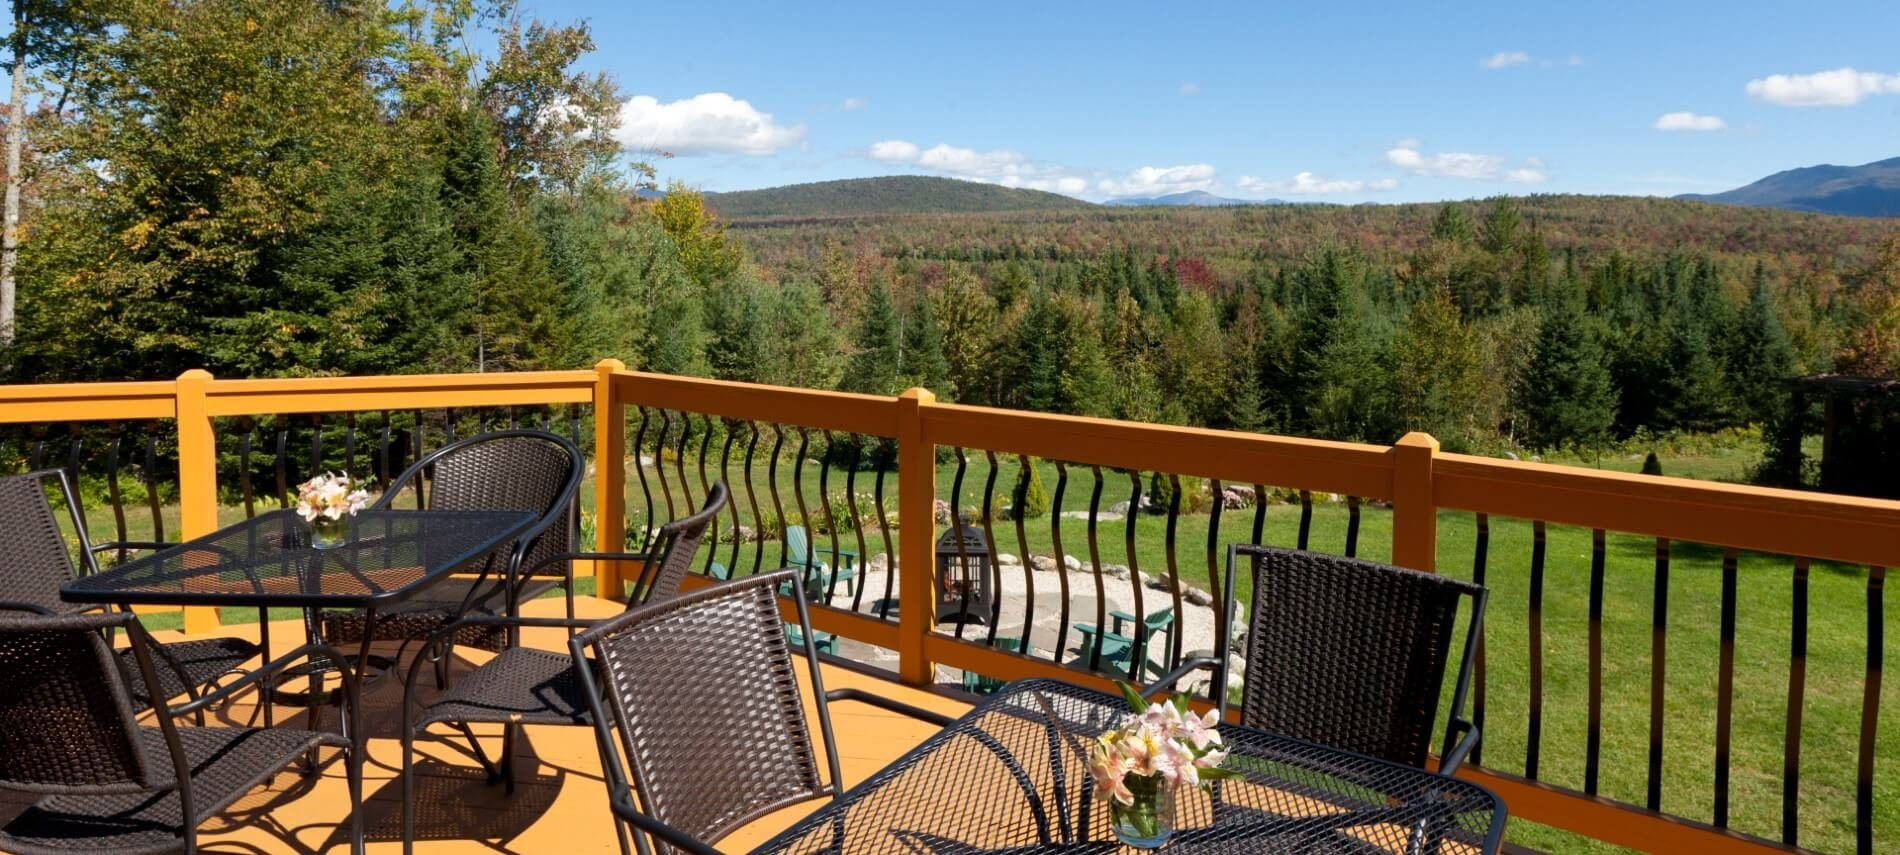 Outdoor deck with wood and iron railings and patio furniture overlooking a lawn and mountain range